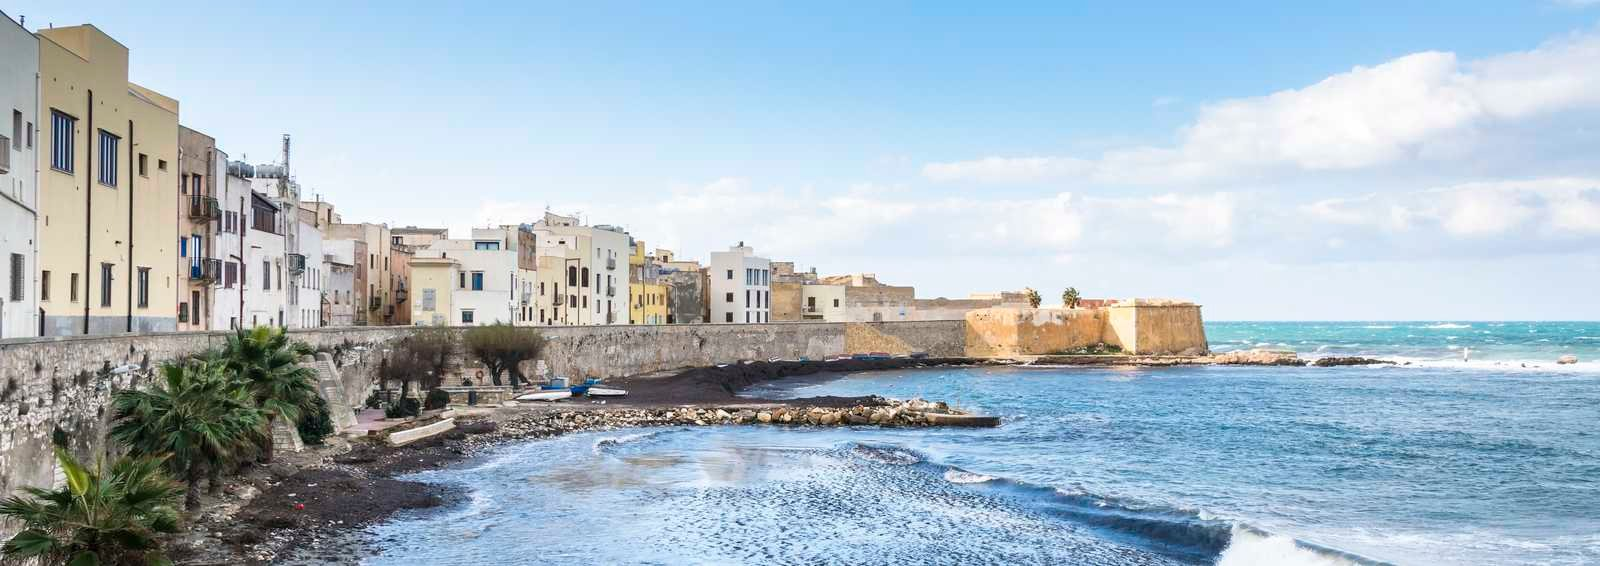 Panoramic view of the Trapani harbor with fisherman boats, Sicily, Italy.